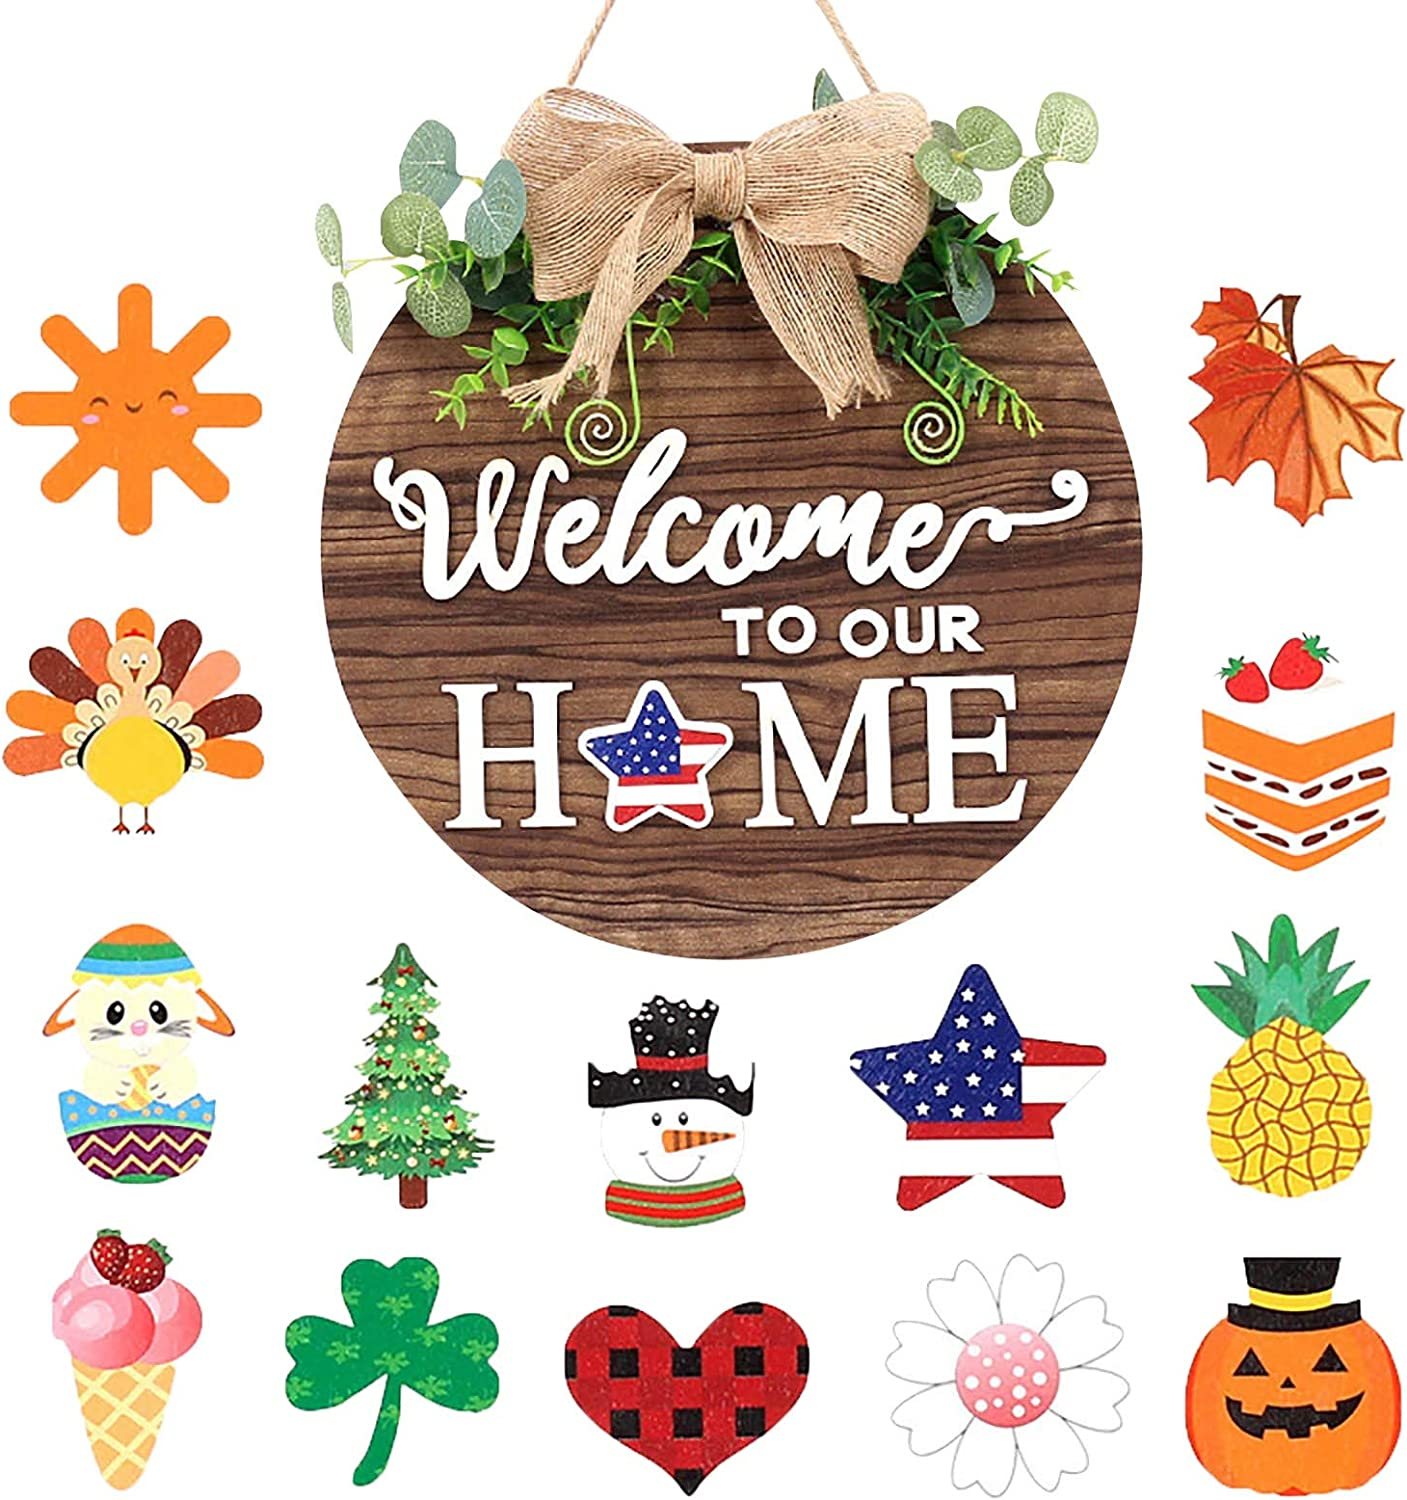 JINRS Interchangeable Welcome Sign for Front Door - Holiday Home Decor Sign with Changeable Icons - Rustic Wooden Door Hangers for Every Season - Farmhouse Front Porch Decor